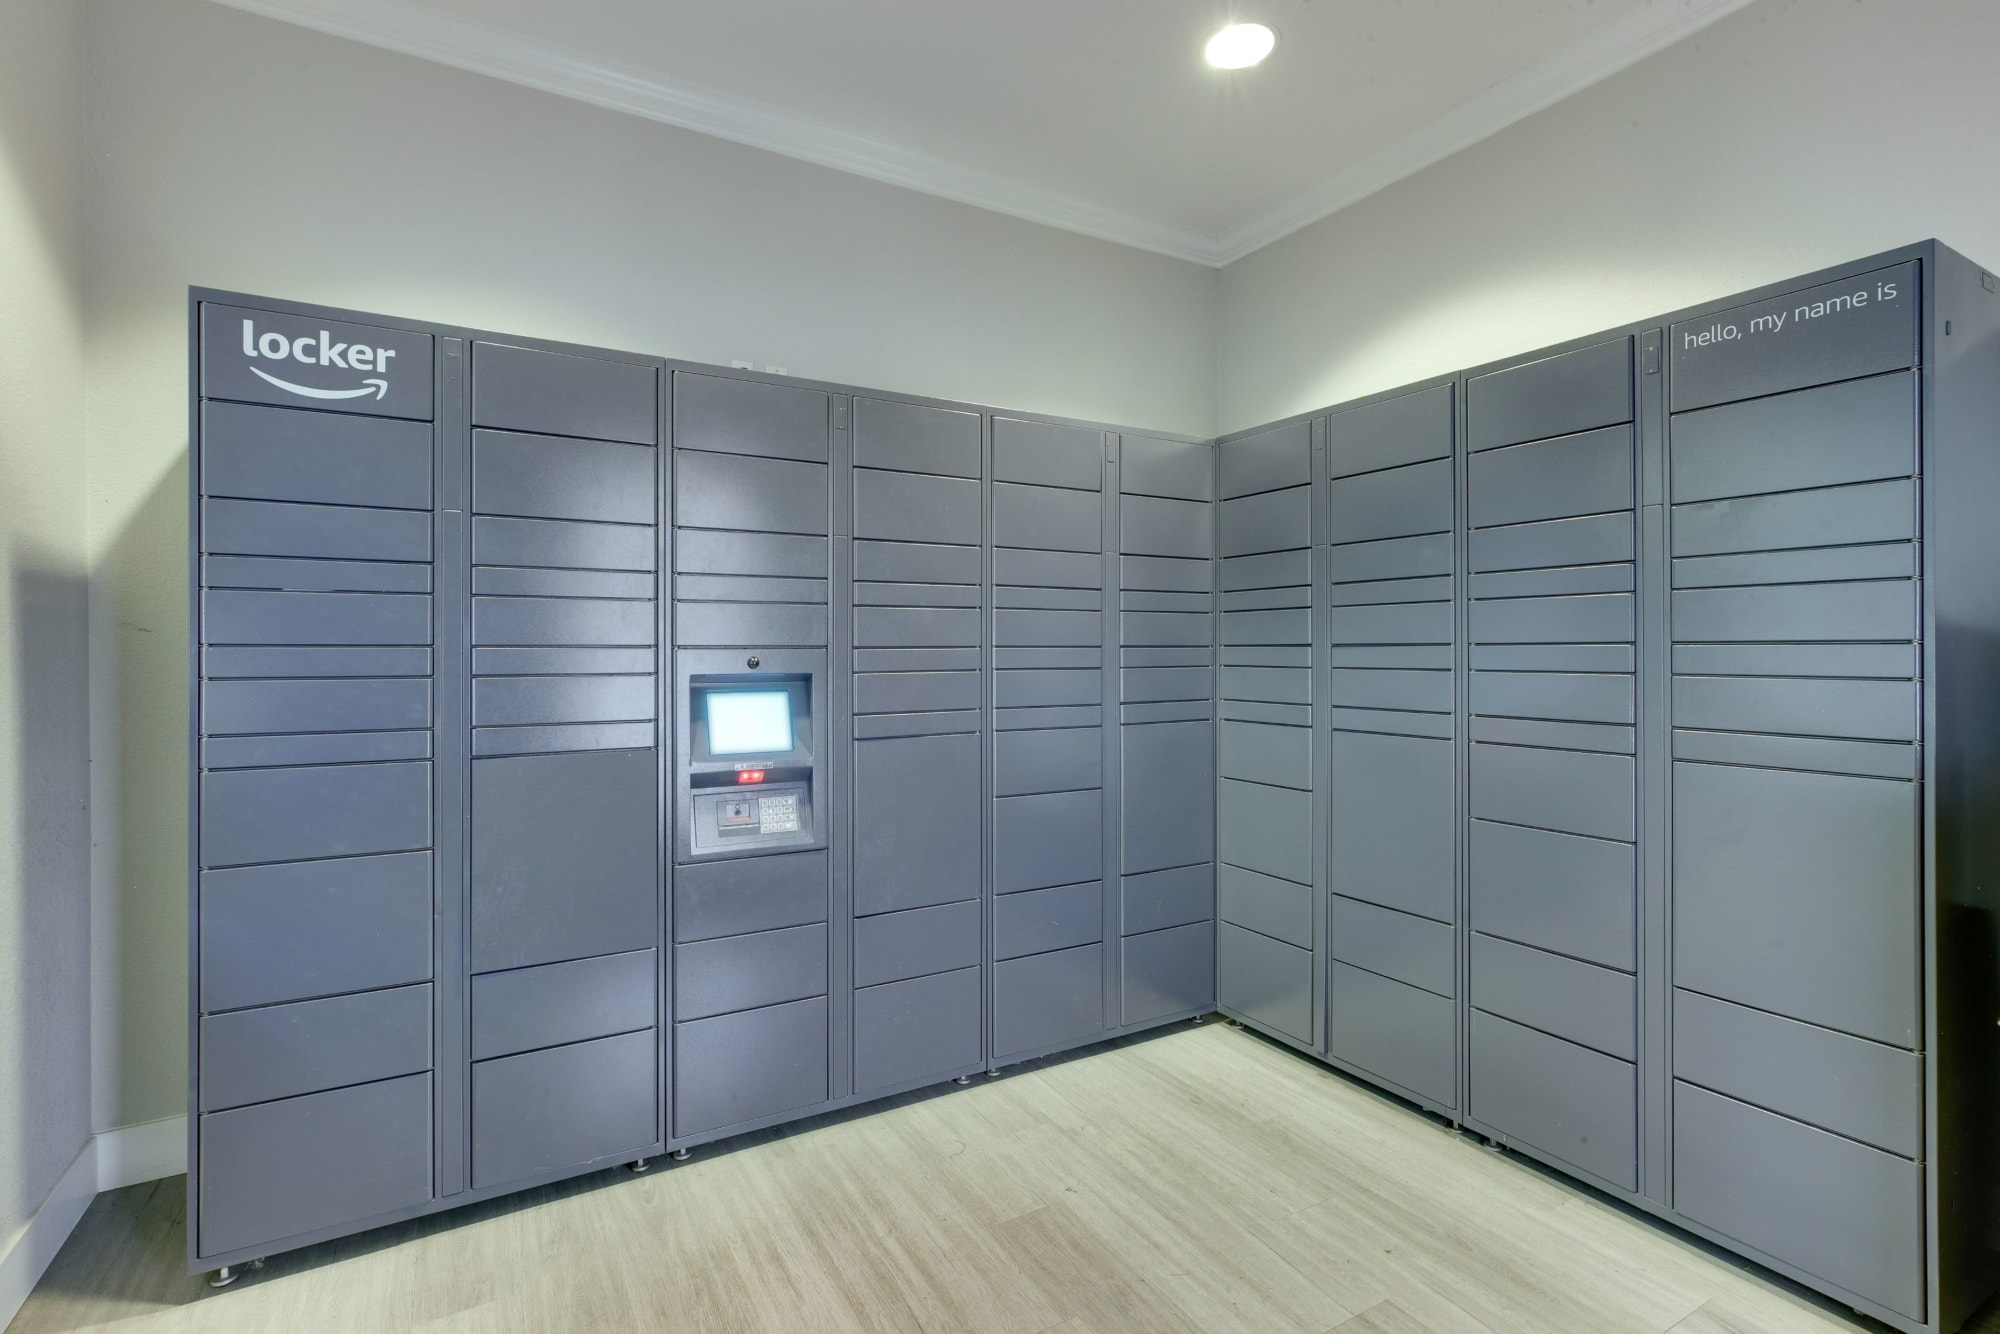 Package lockers at The Grove at Orenco Station in Hillsboro, Oregon